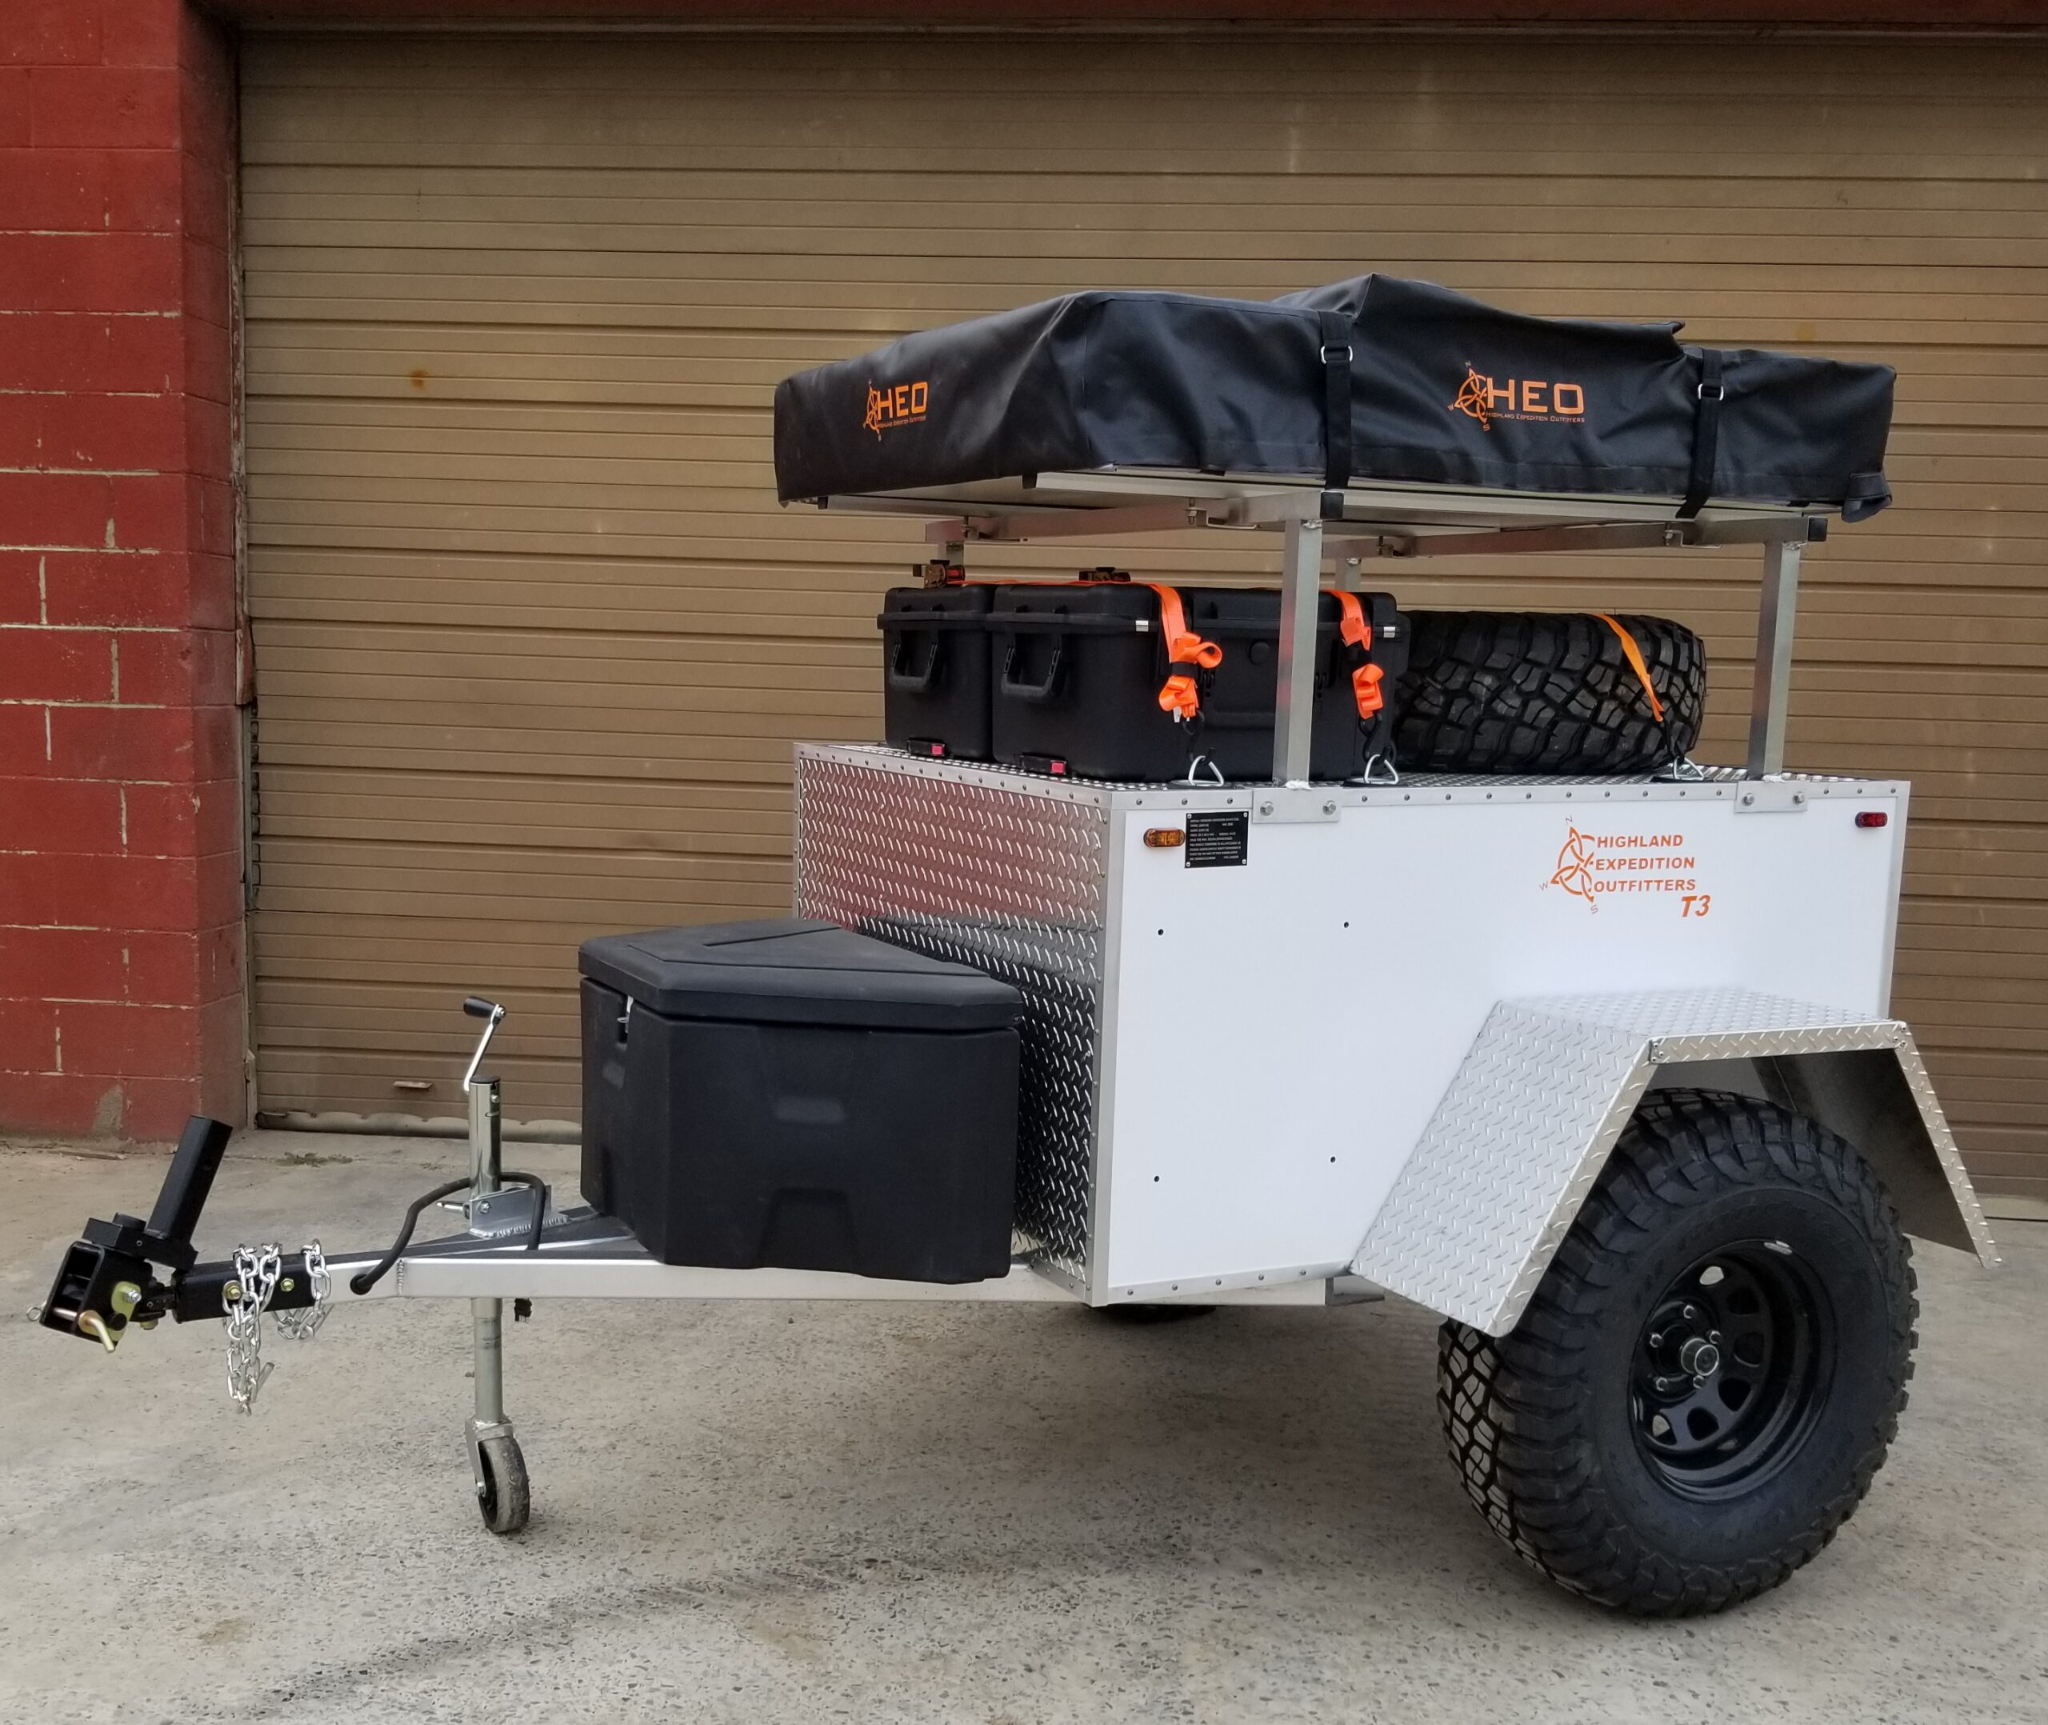 Highland Expedition Outfitters (HEO) T3 cheap boondocking camper